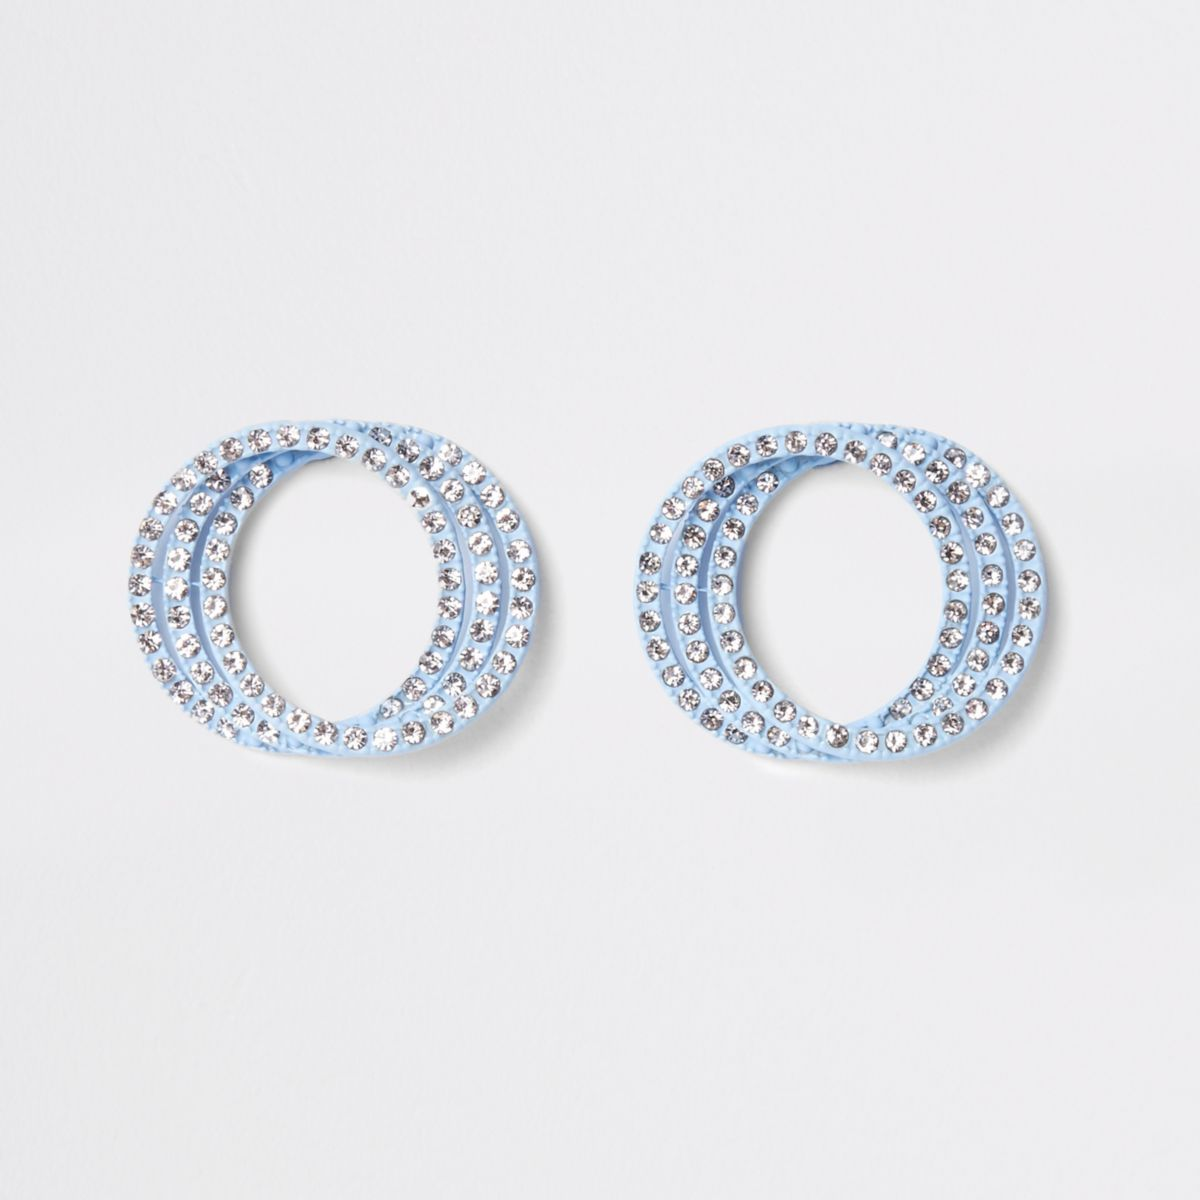 Blue diamante triple ring stud earrings